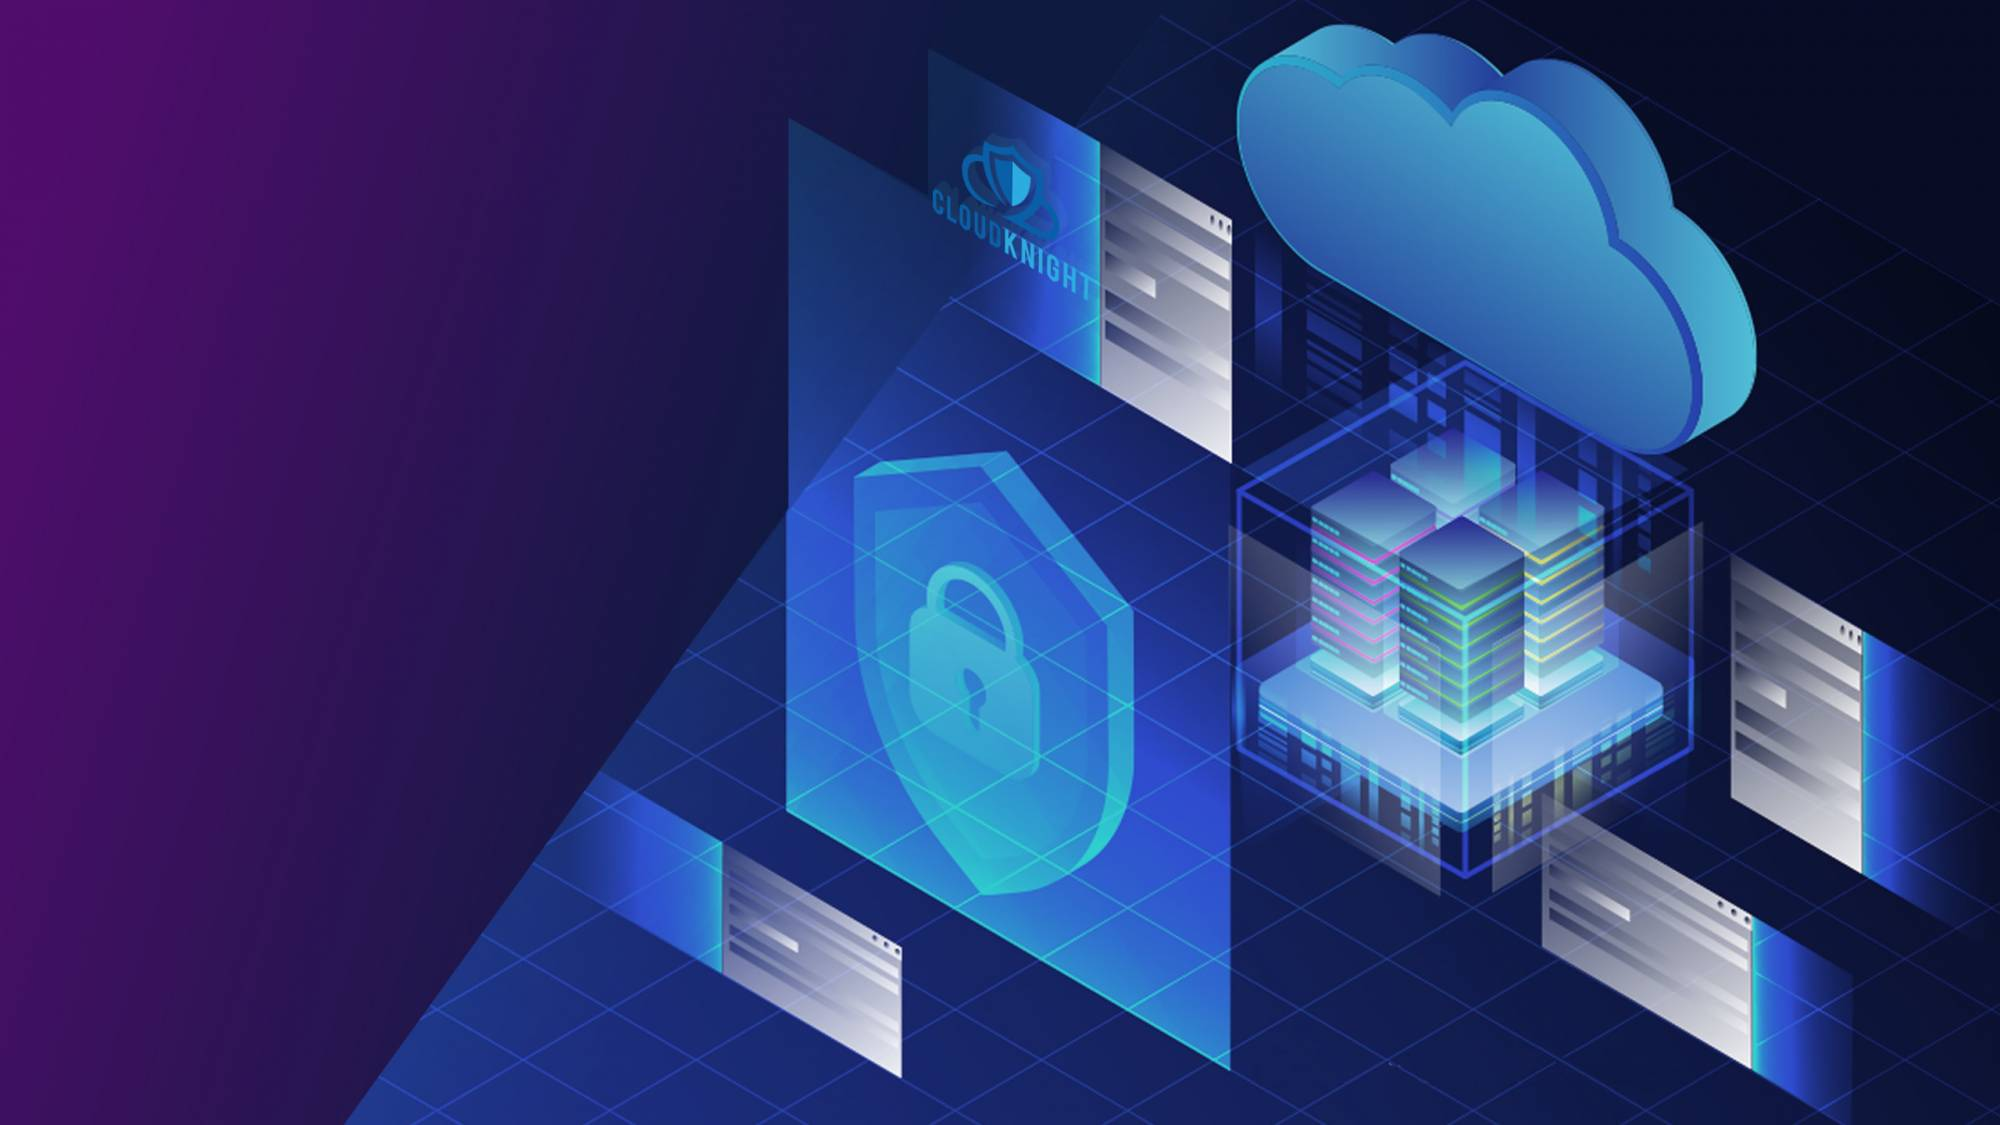 CloudKnight Security for Enterprise Solutioning